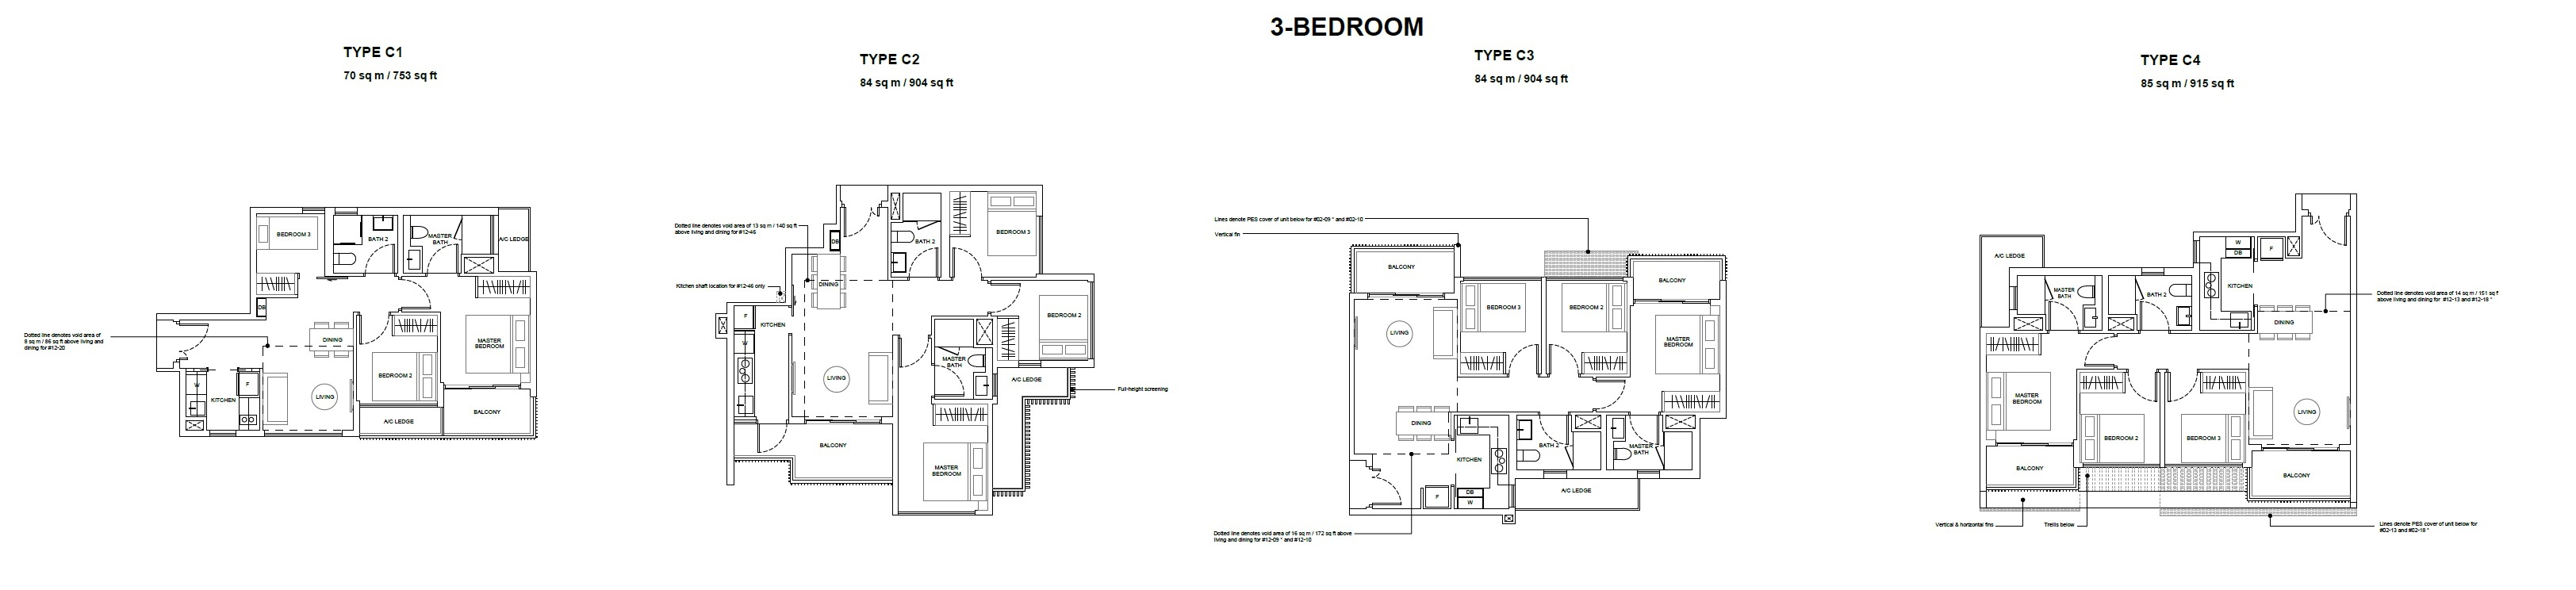 forest-woods-floor-plan-for-three-bedroom